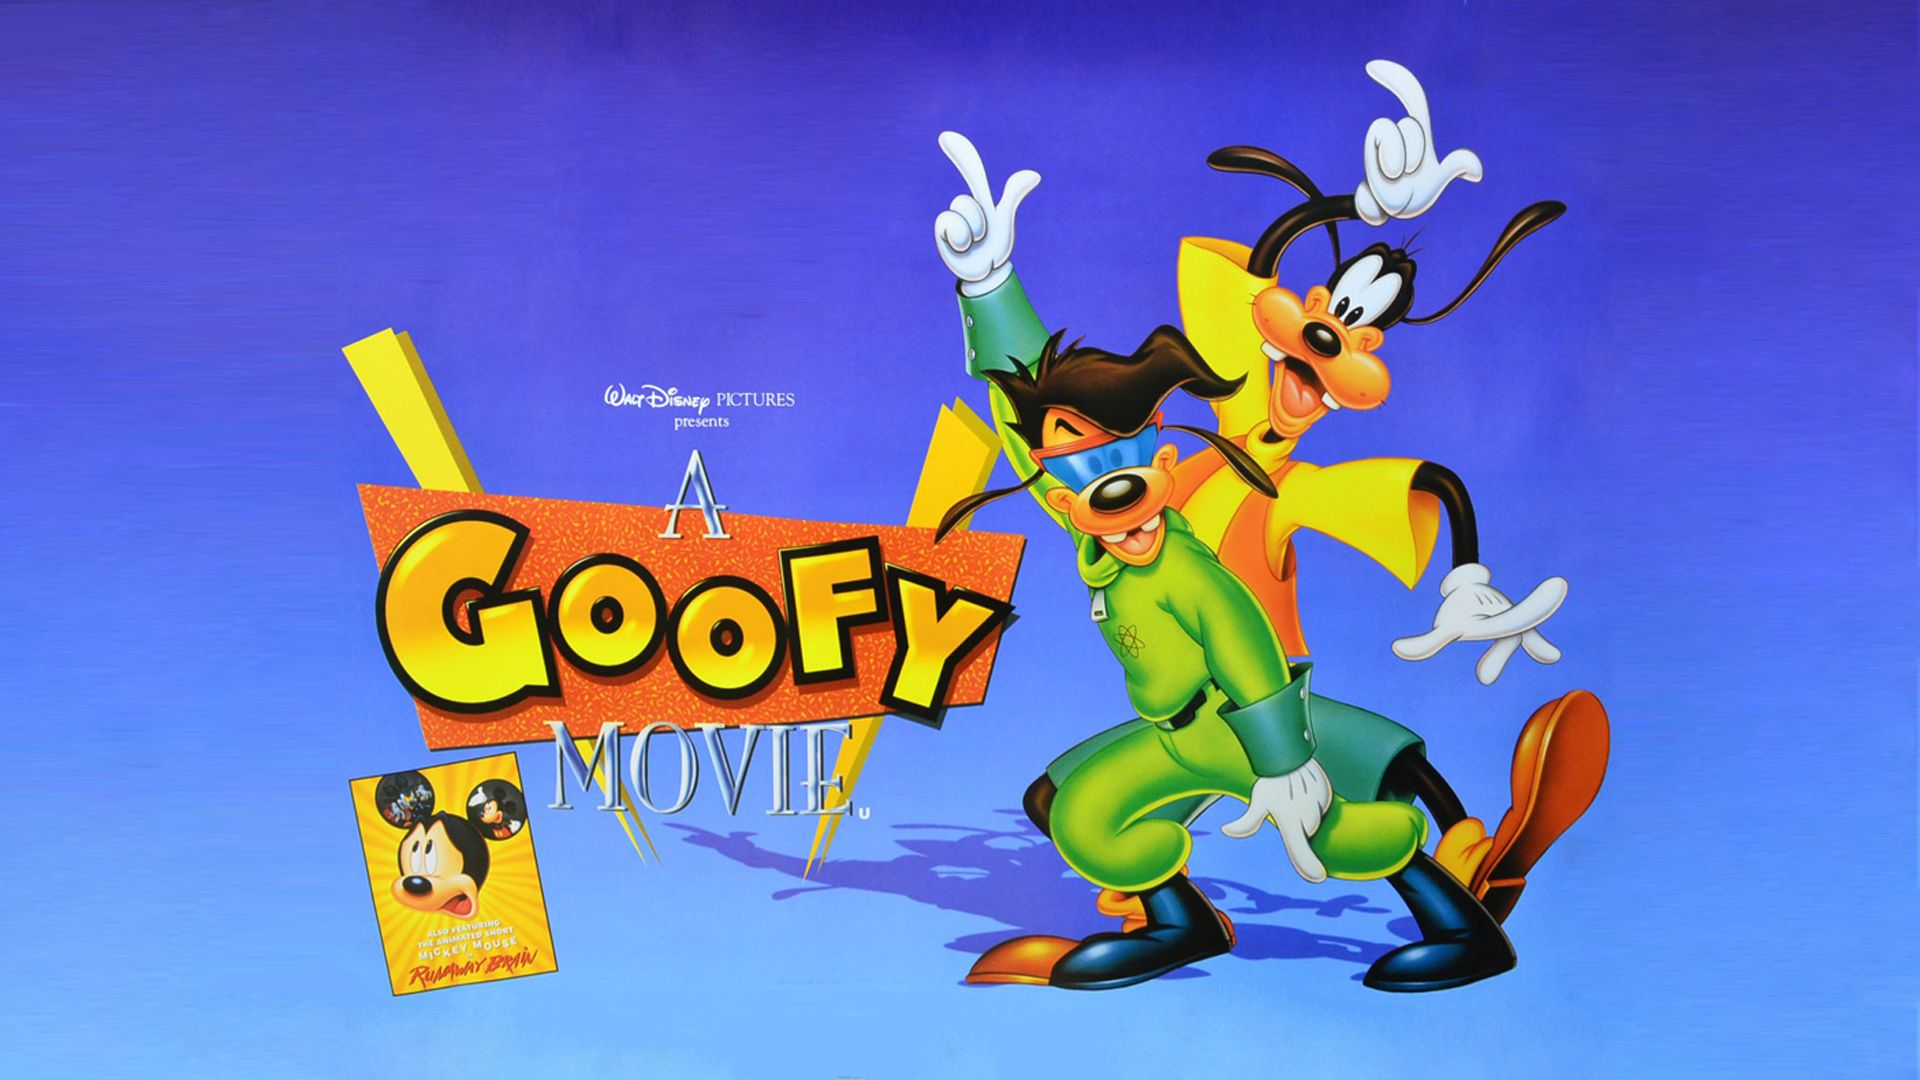 A Goofy Movie Wallpapers Top Free A Goofy Movie Backgrounds Wallpaperaccess